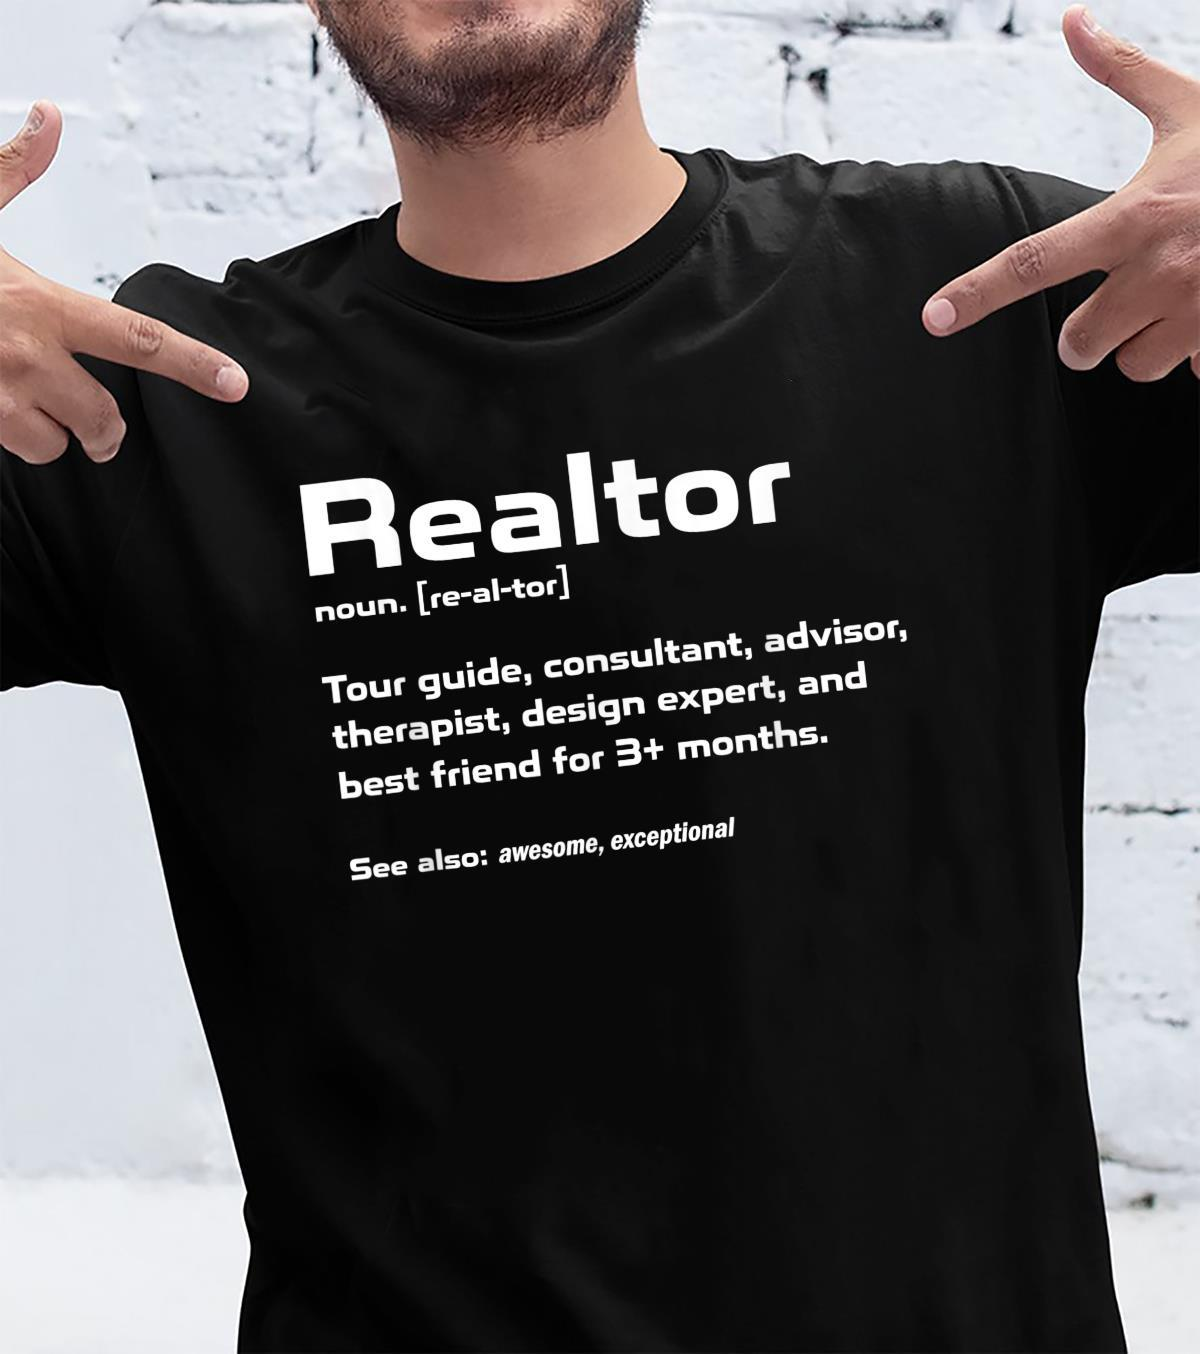 Funny Definition The Realtor For Real Estate Agent Shirt